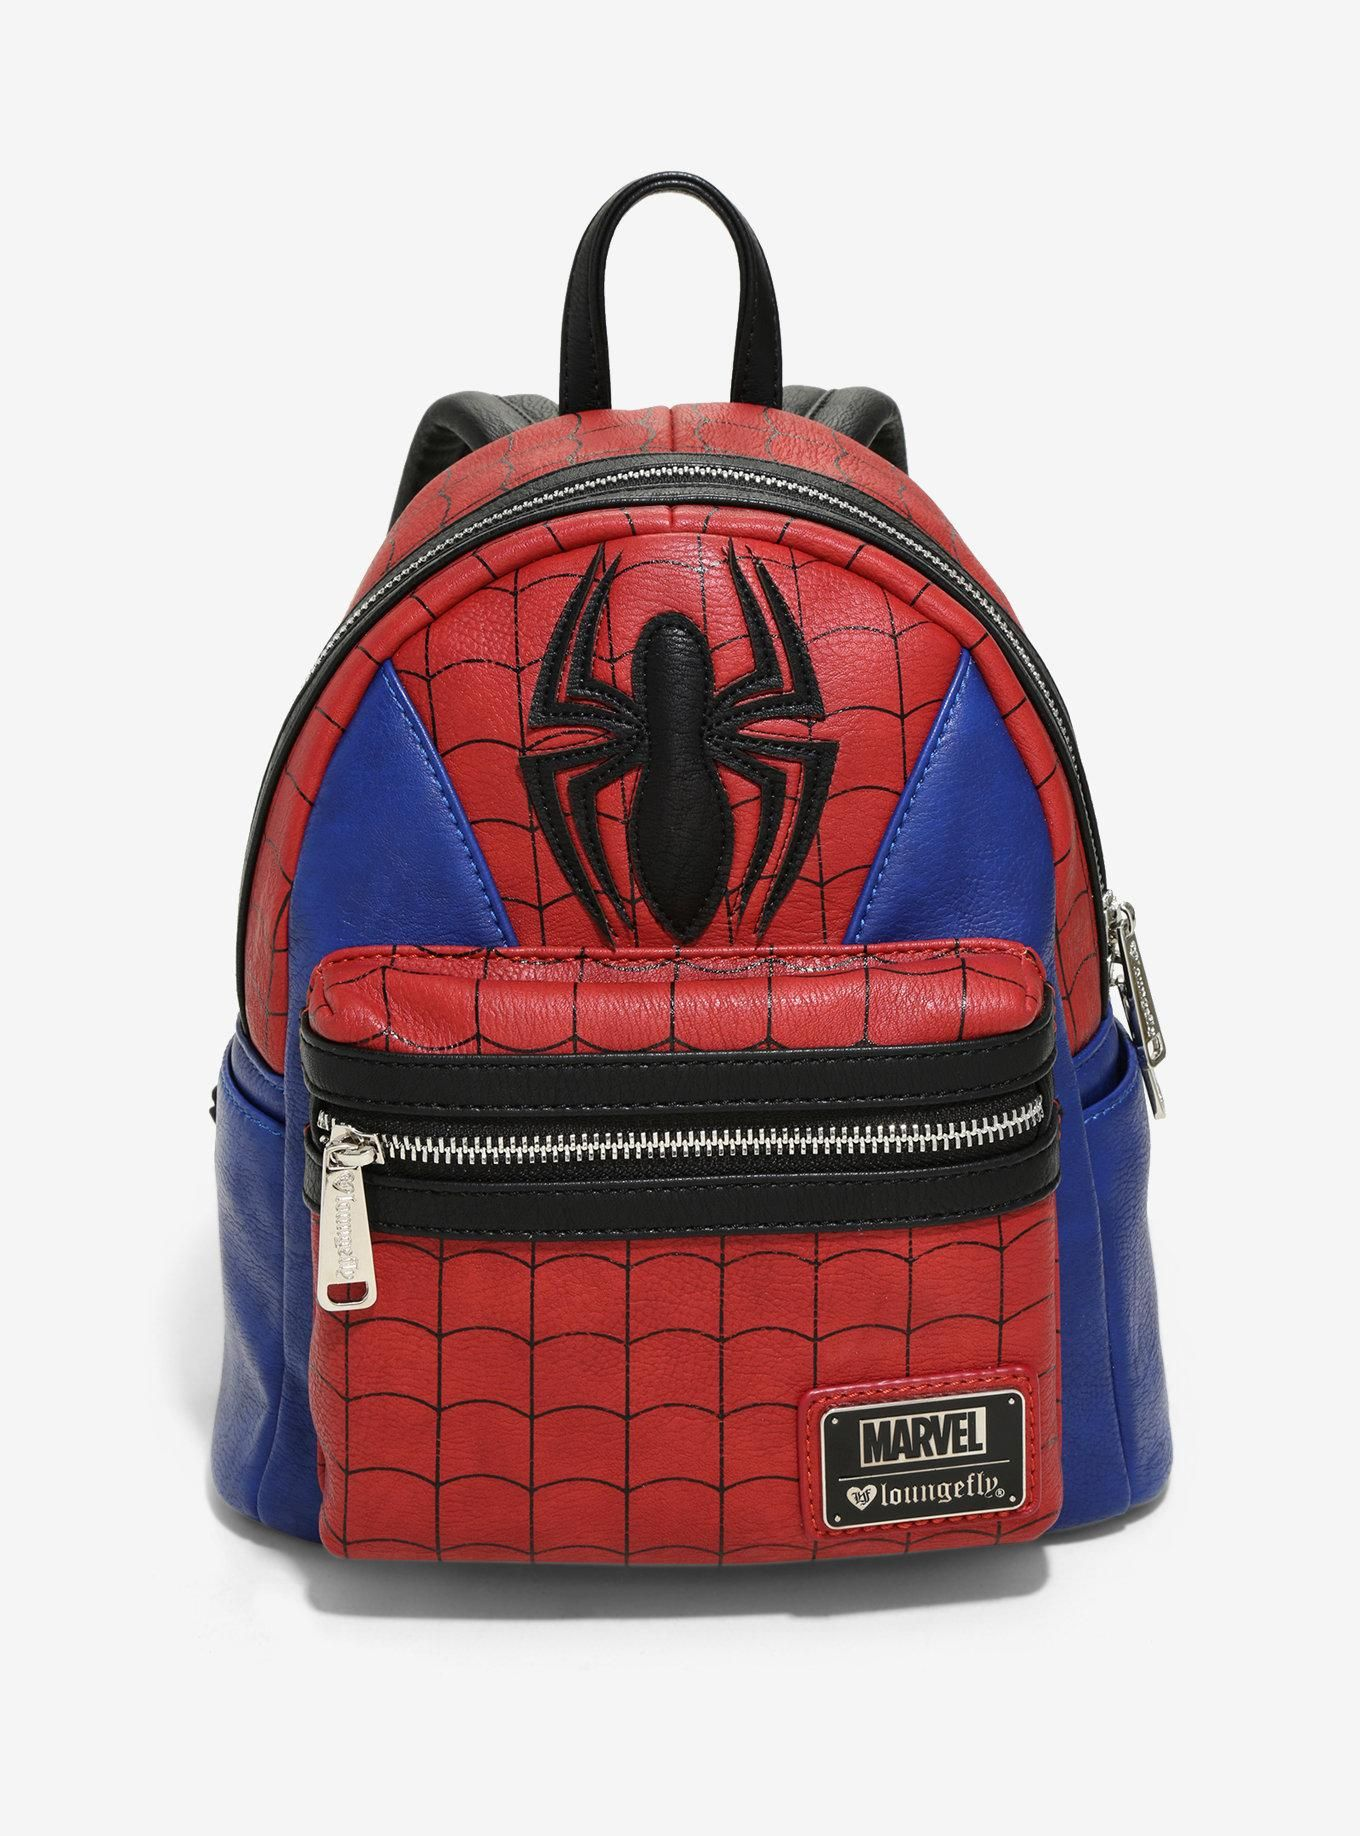 c5404abb86 Loungefly Marvel Spider-Man Suit Mini Backpack